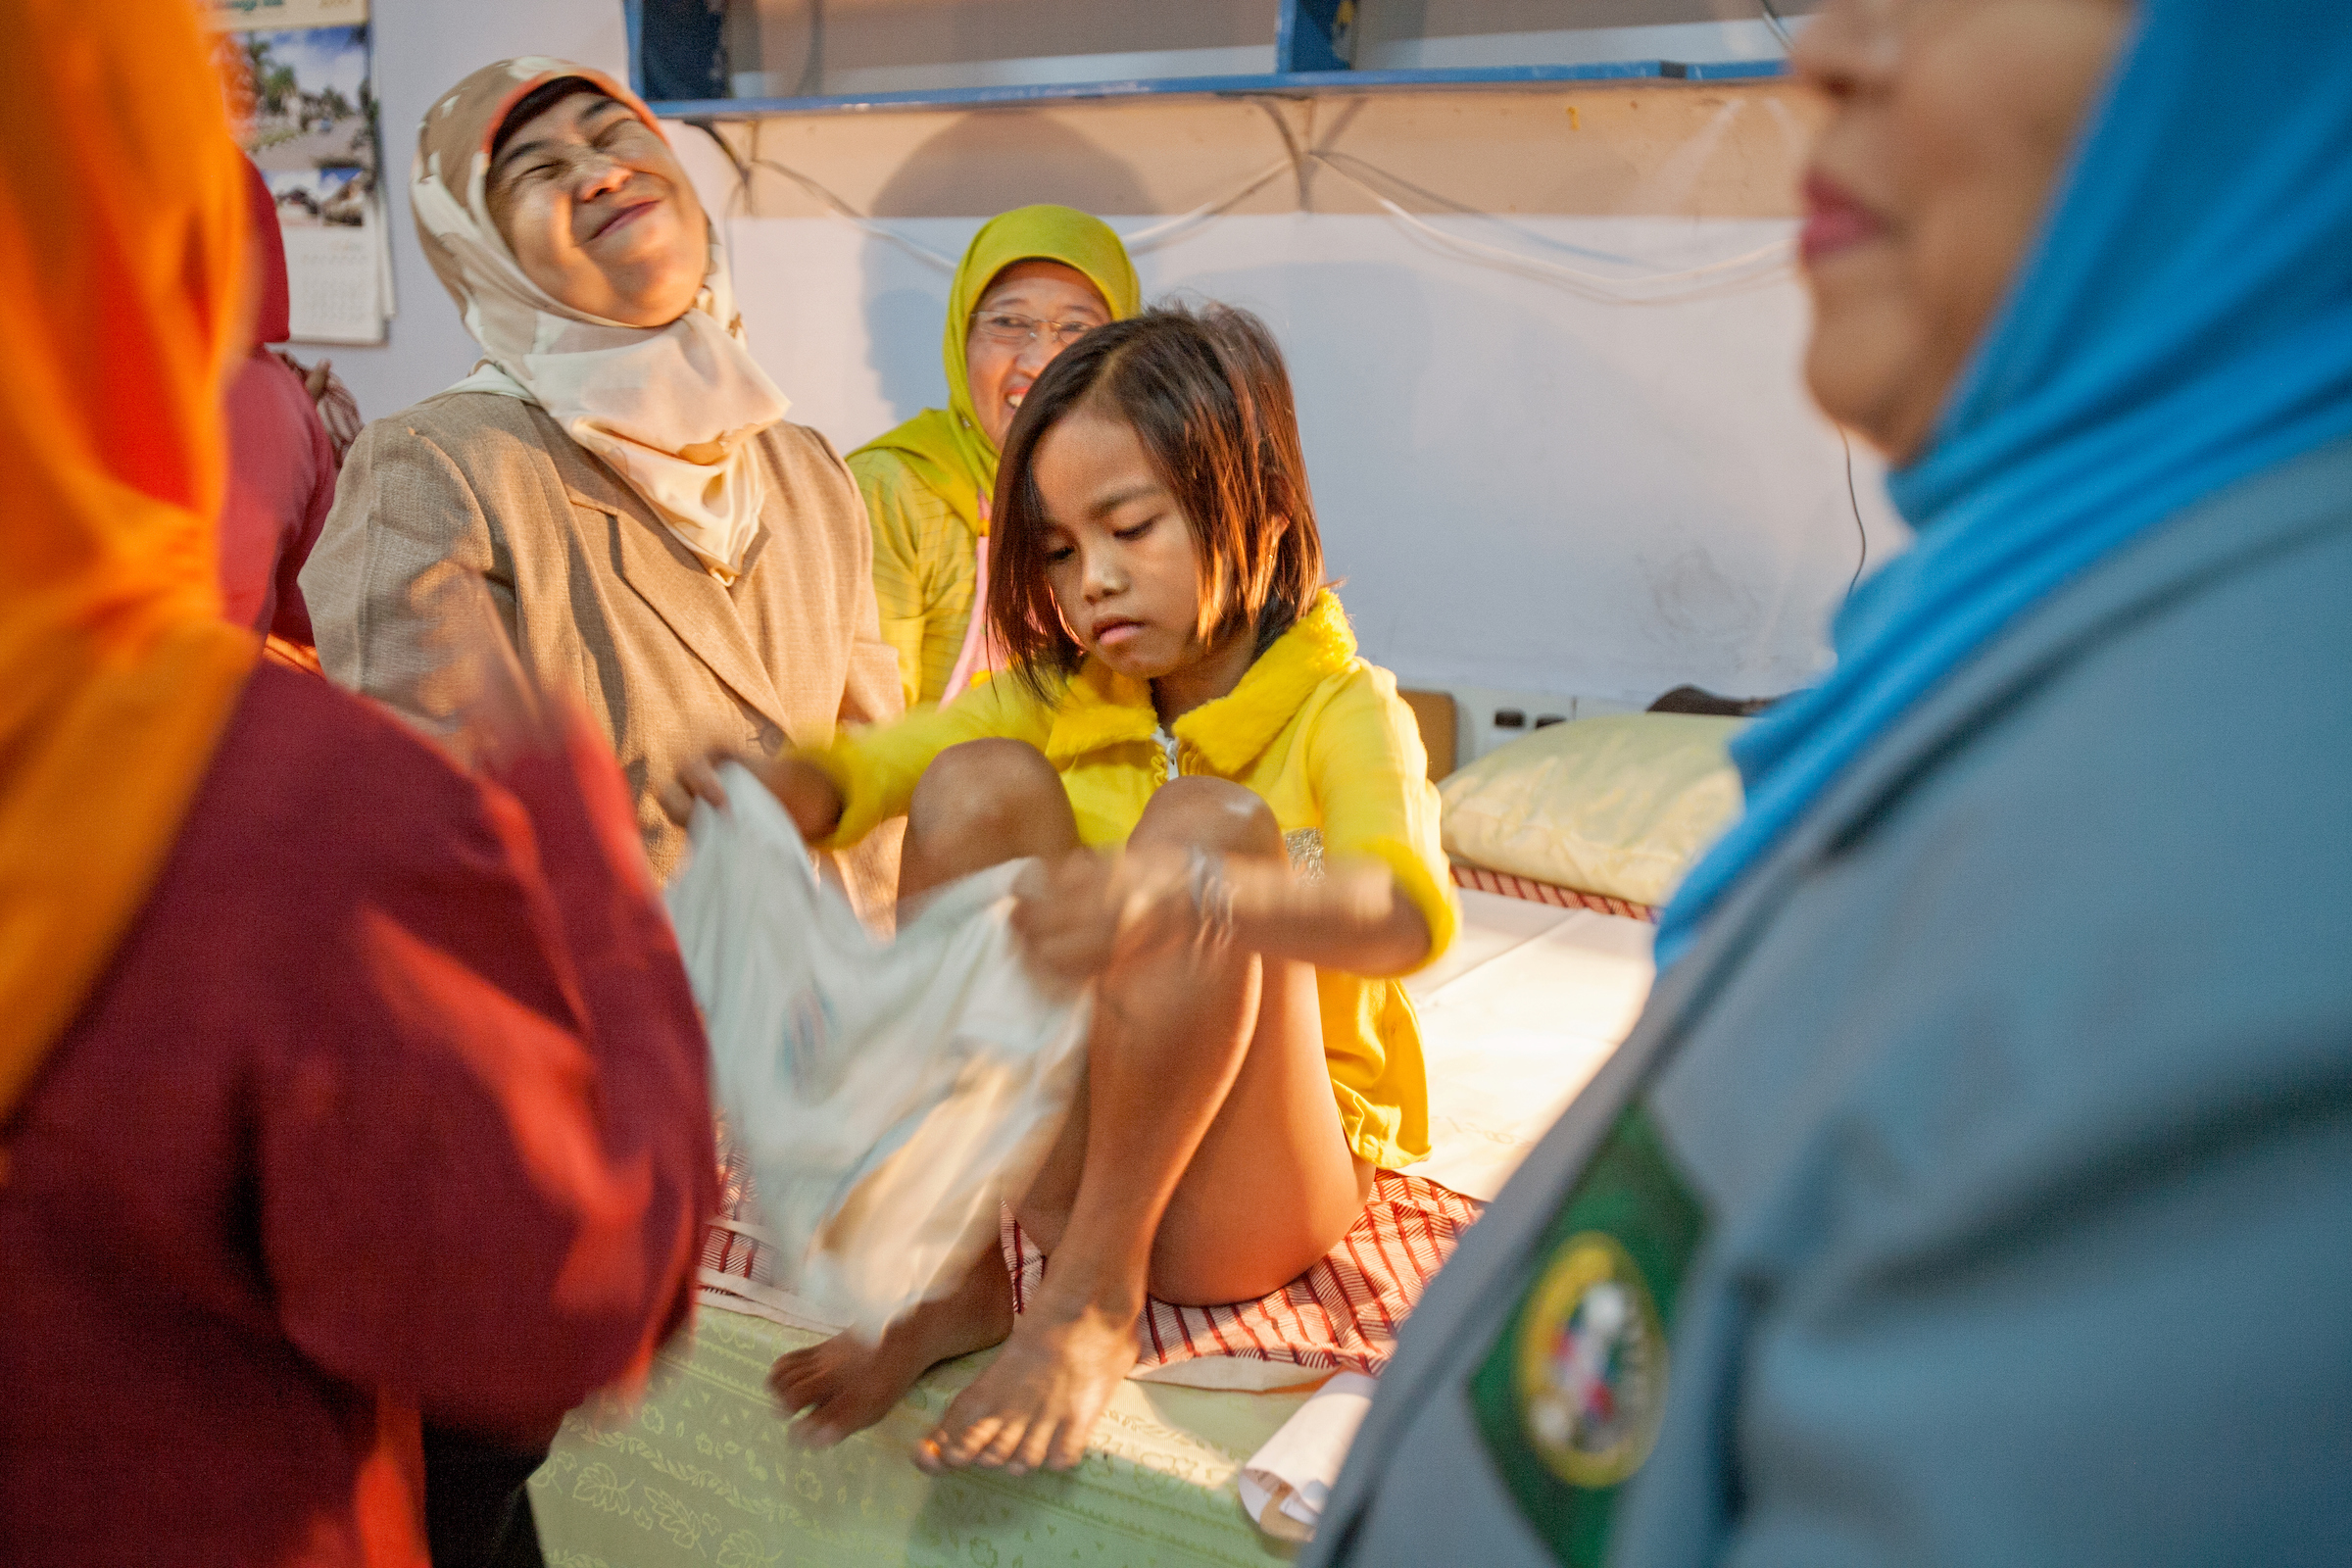 Surrounded by her circumcisers, a young girl is helped back into her underwear after the procedure in Bandung, Indonesia.